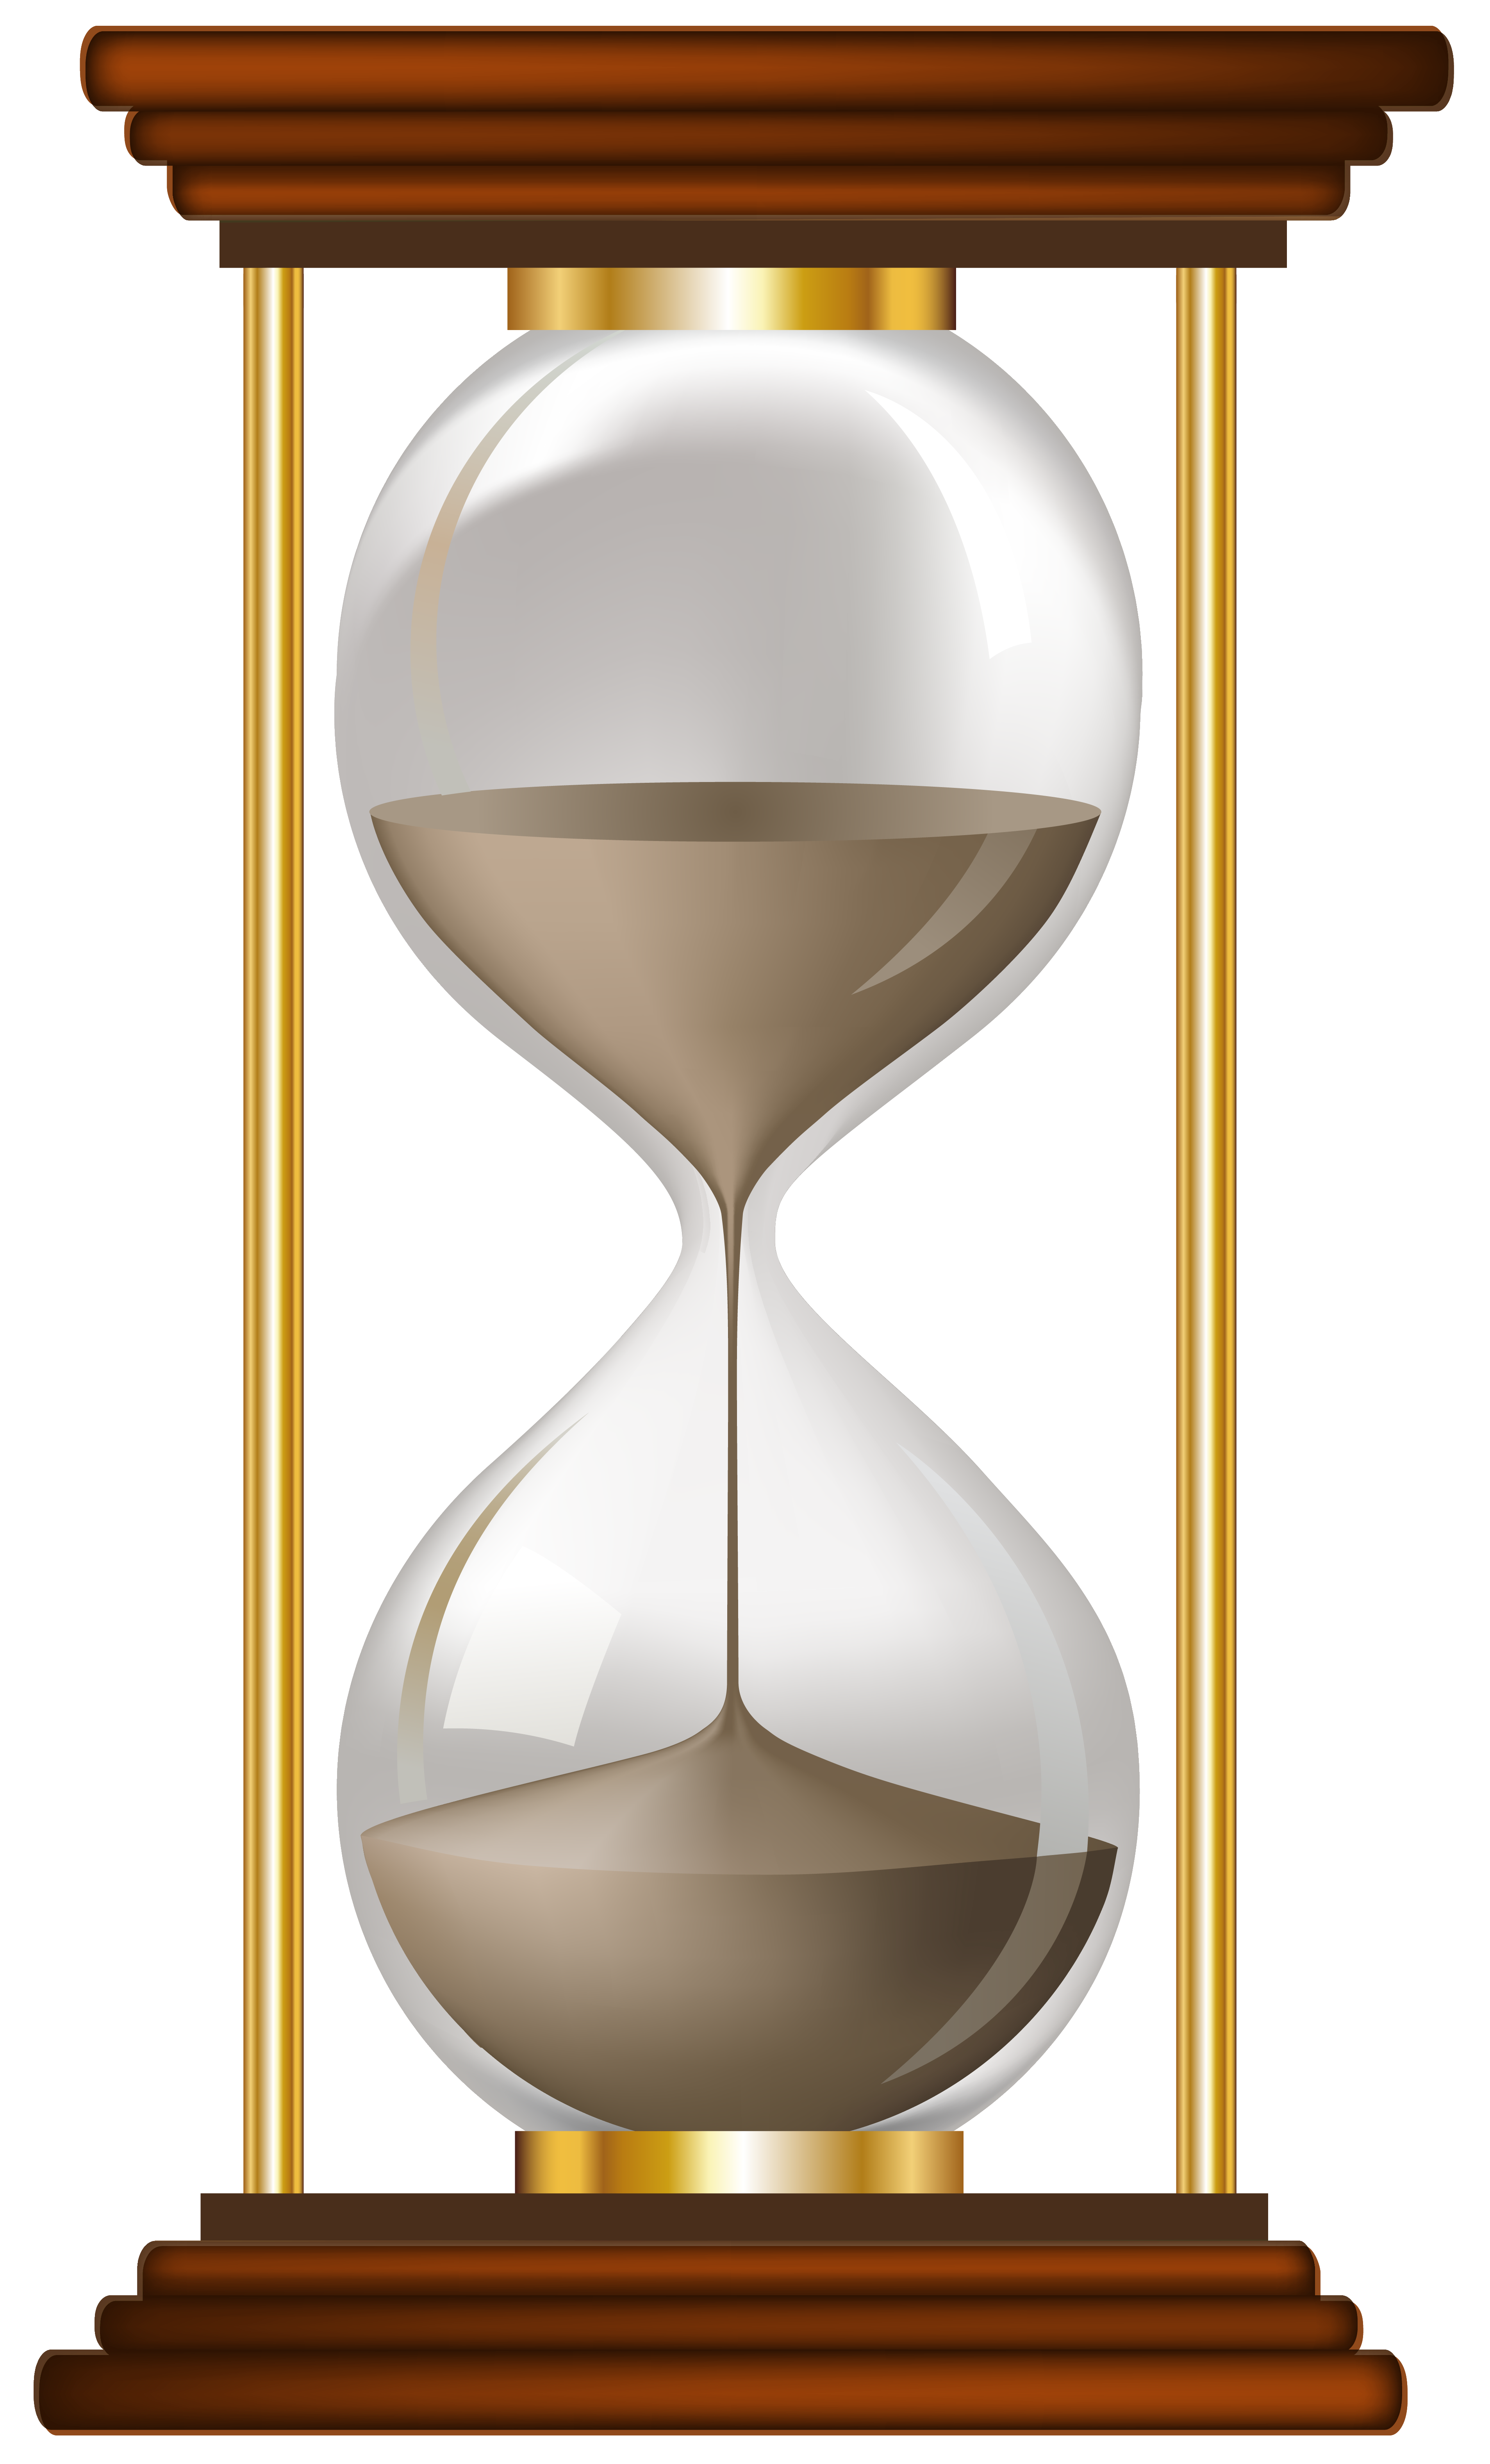 small resolution of sand hourglass best web clipart art images sands clocks decoupage